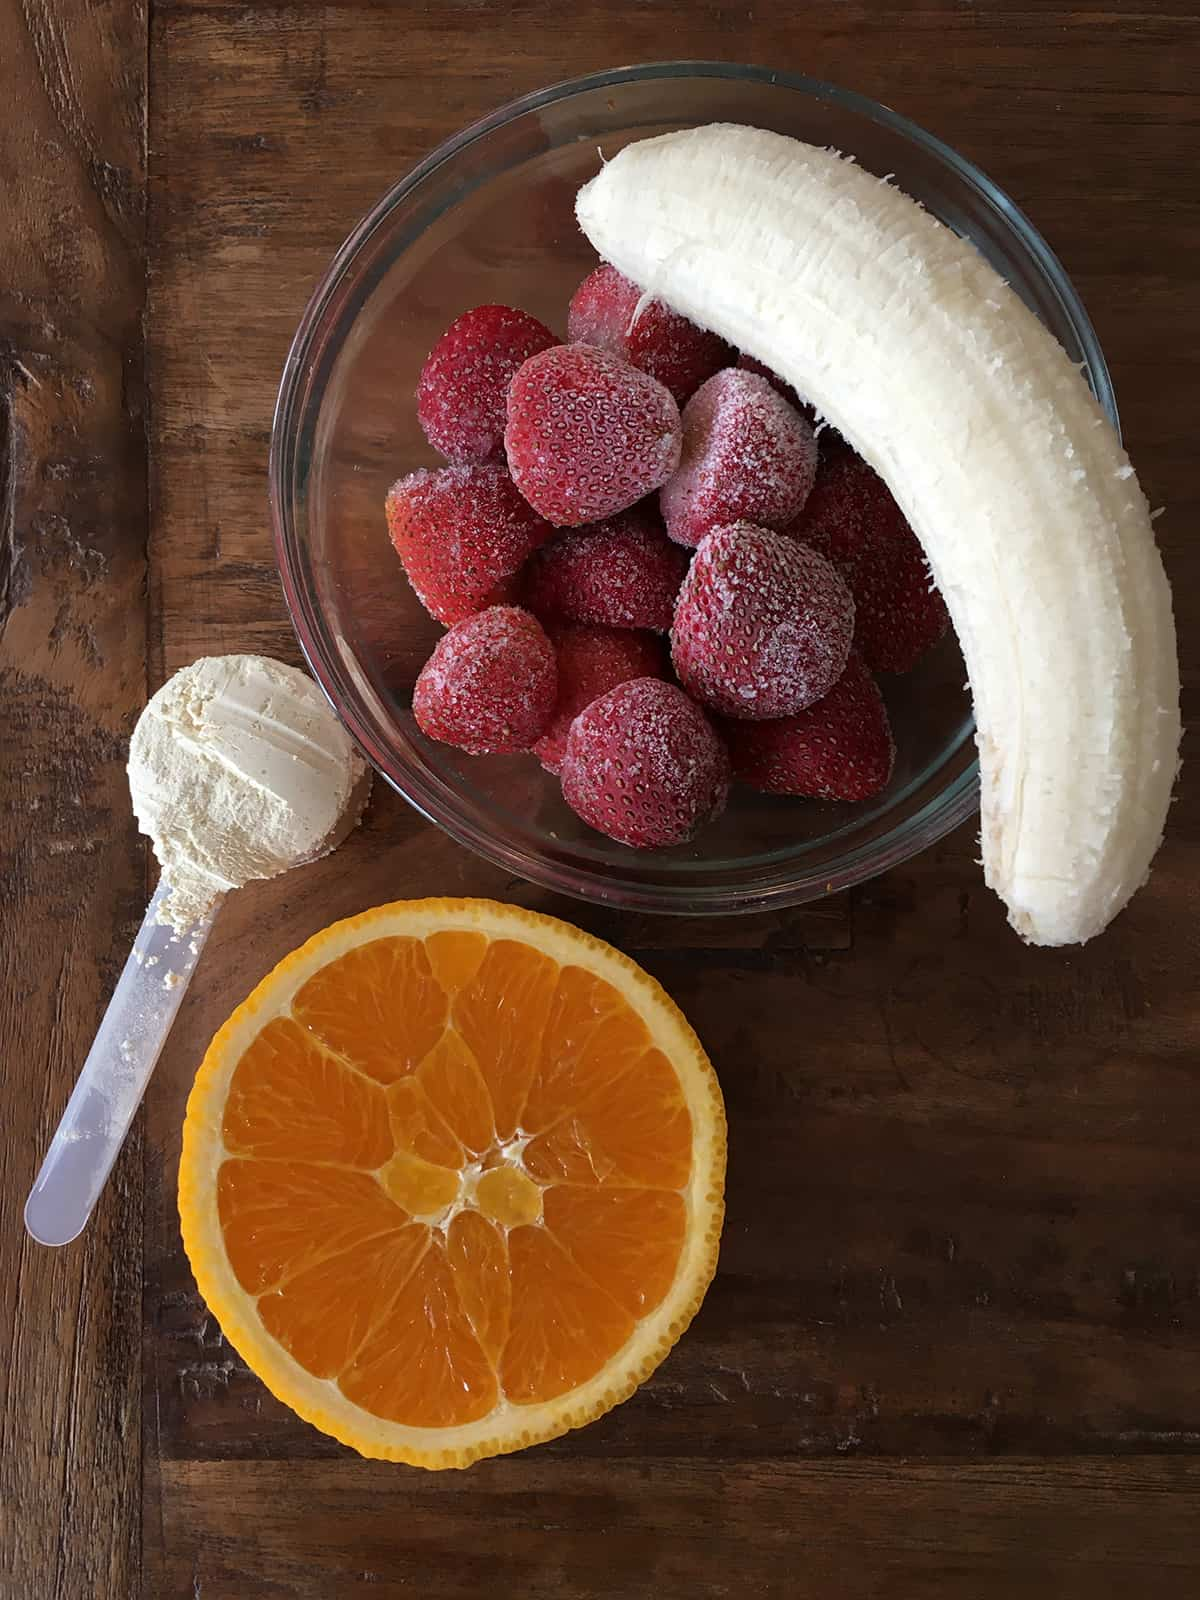 Frozen strawberries, peeled banana, half an orange and a scoop of protein powder on a brown wood table